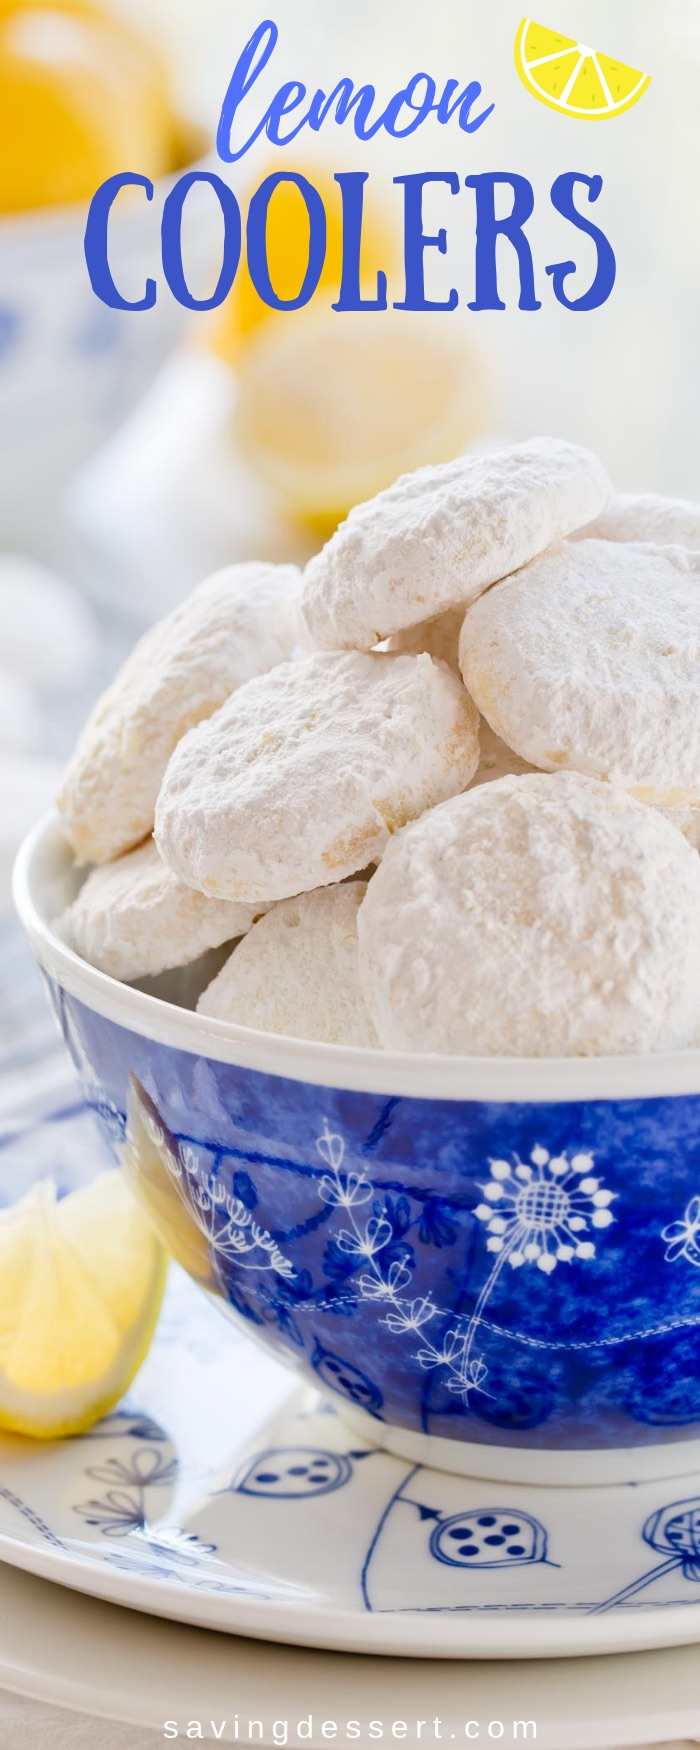 Lemon Coolers -hot from the oven, these melt-in-your mouth cookies are tossed in a mixture of crystallized lemon and powdered sugar for the most incredible intense lemon flavor ever! #lemon #lemoncookies #lemoncoolers #cookies #baking